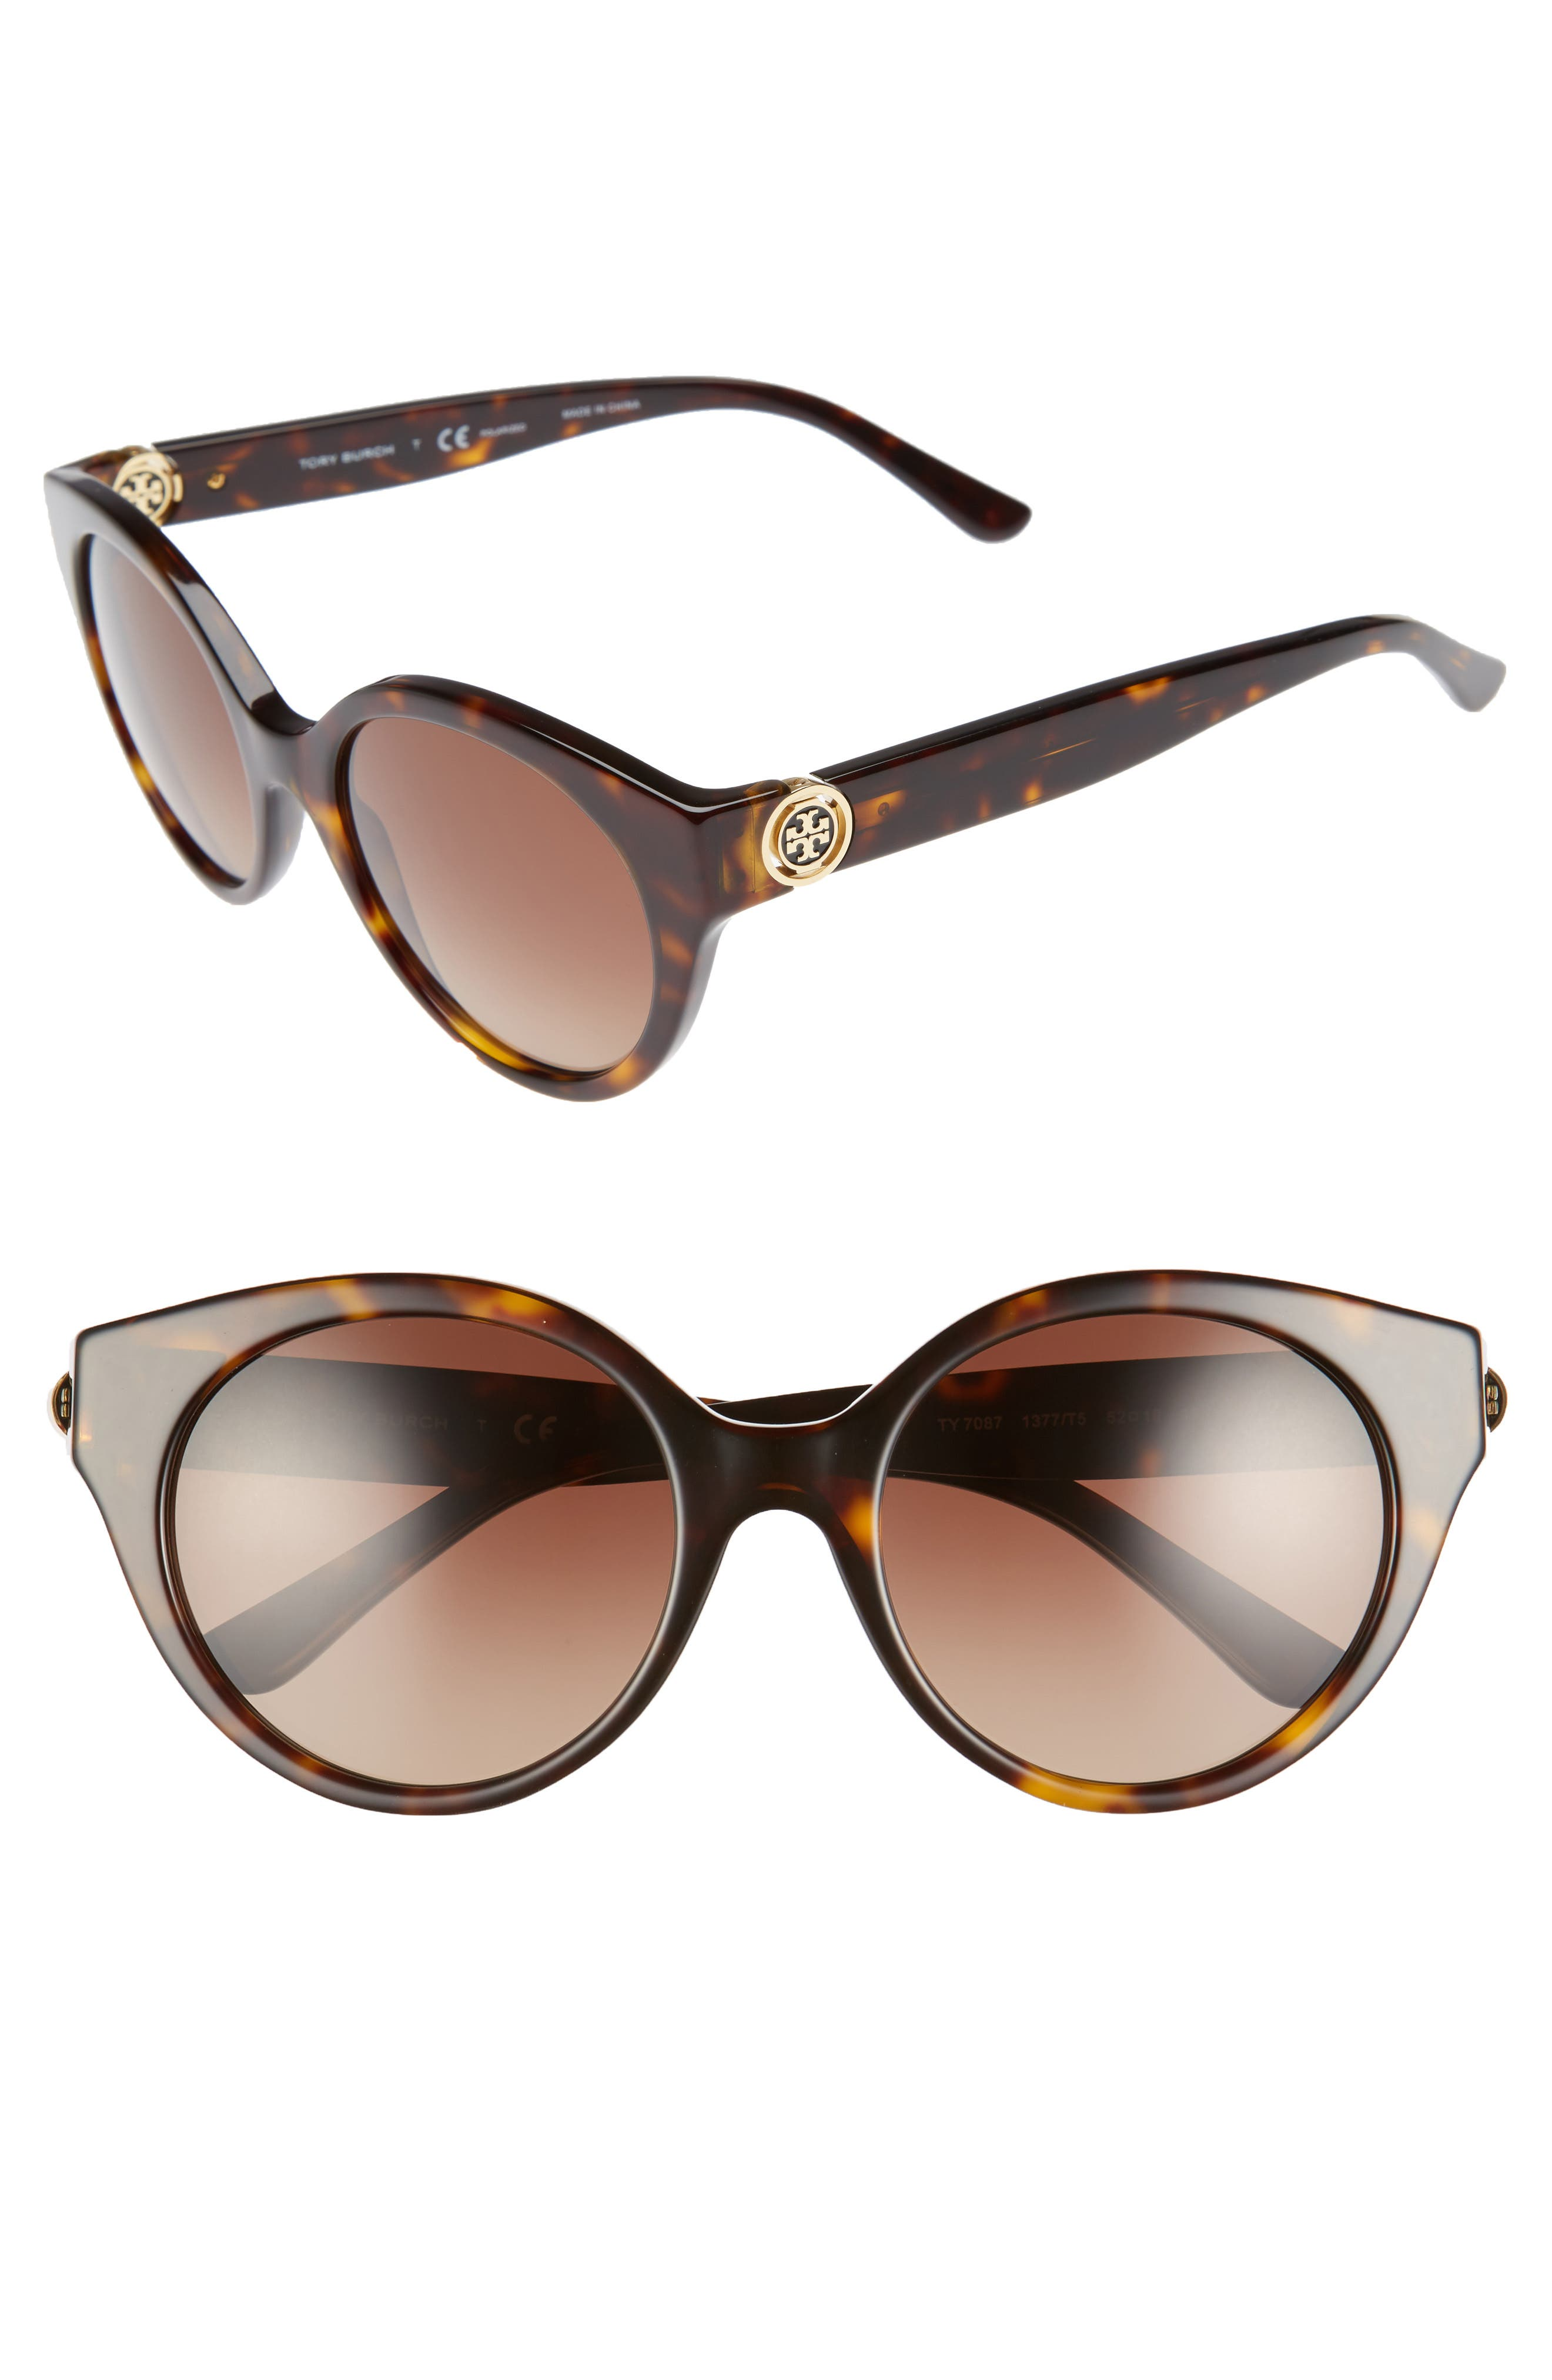 Tory Burch 52mm Cat Eye Sunglasses